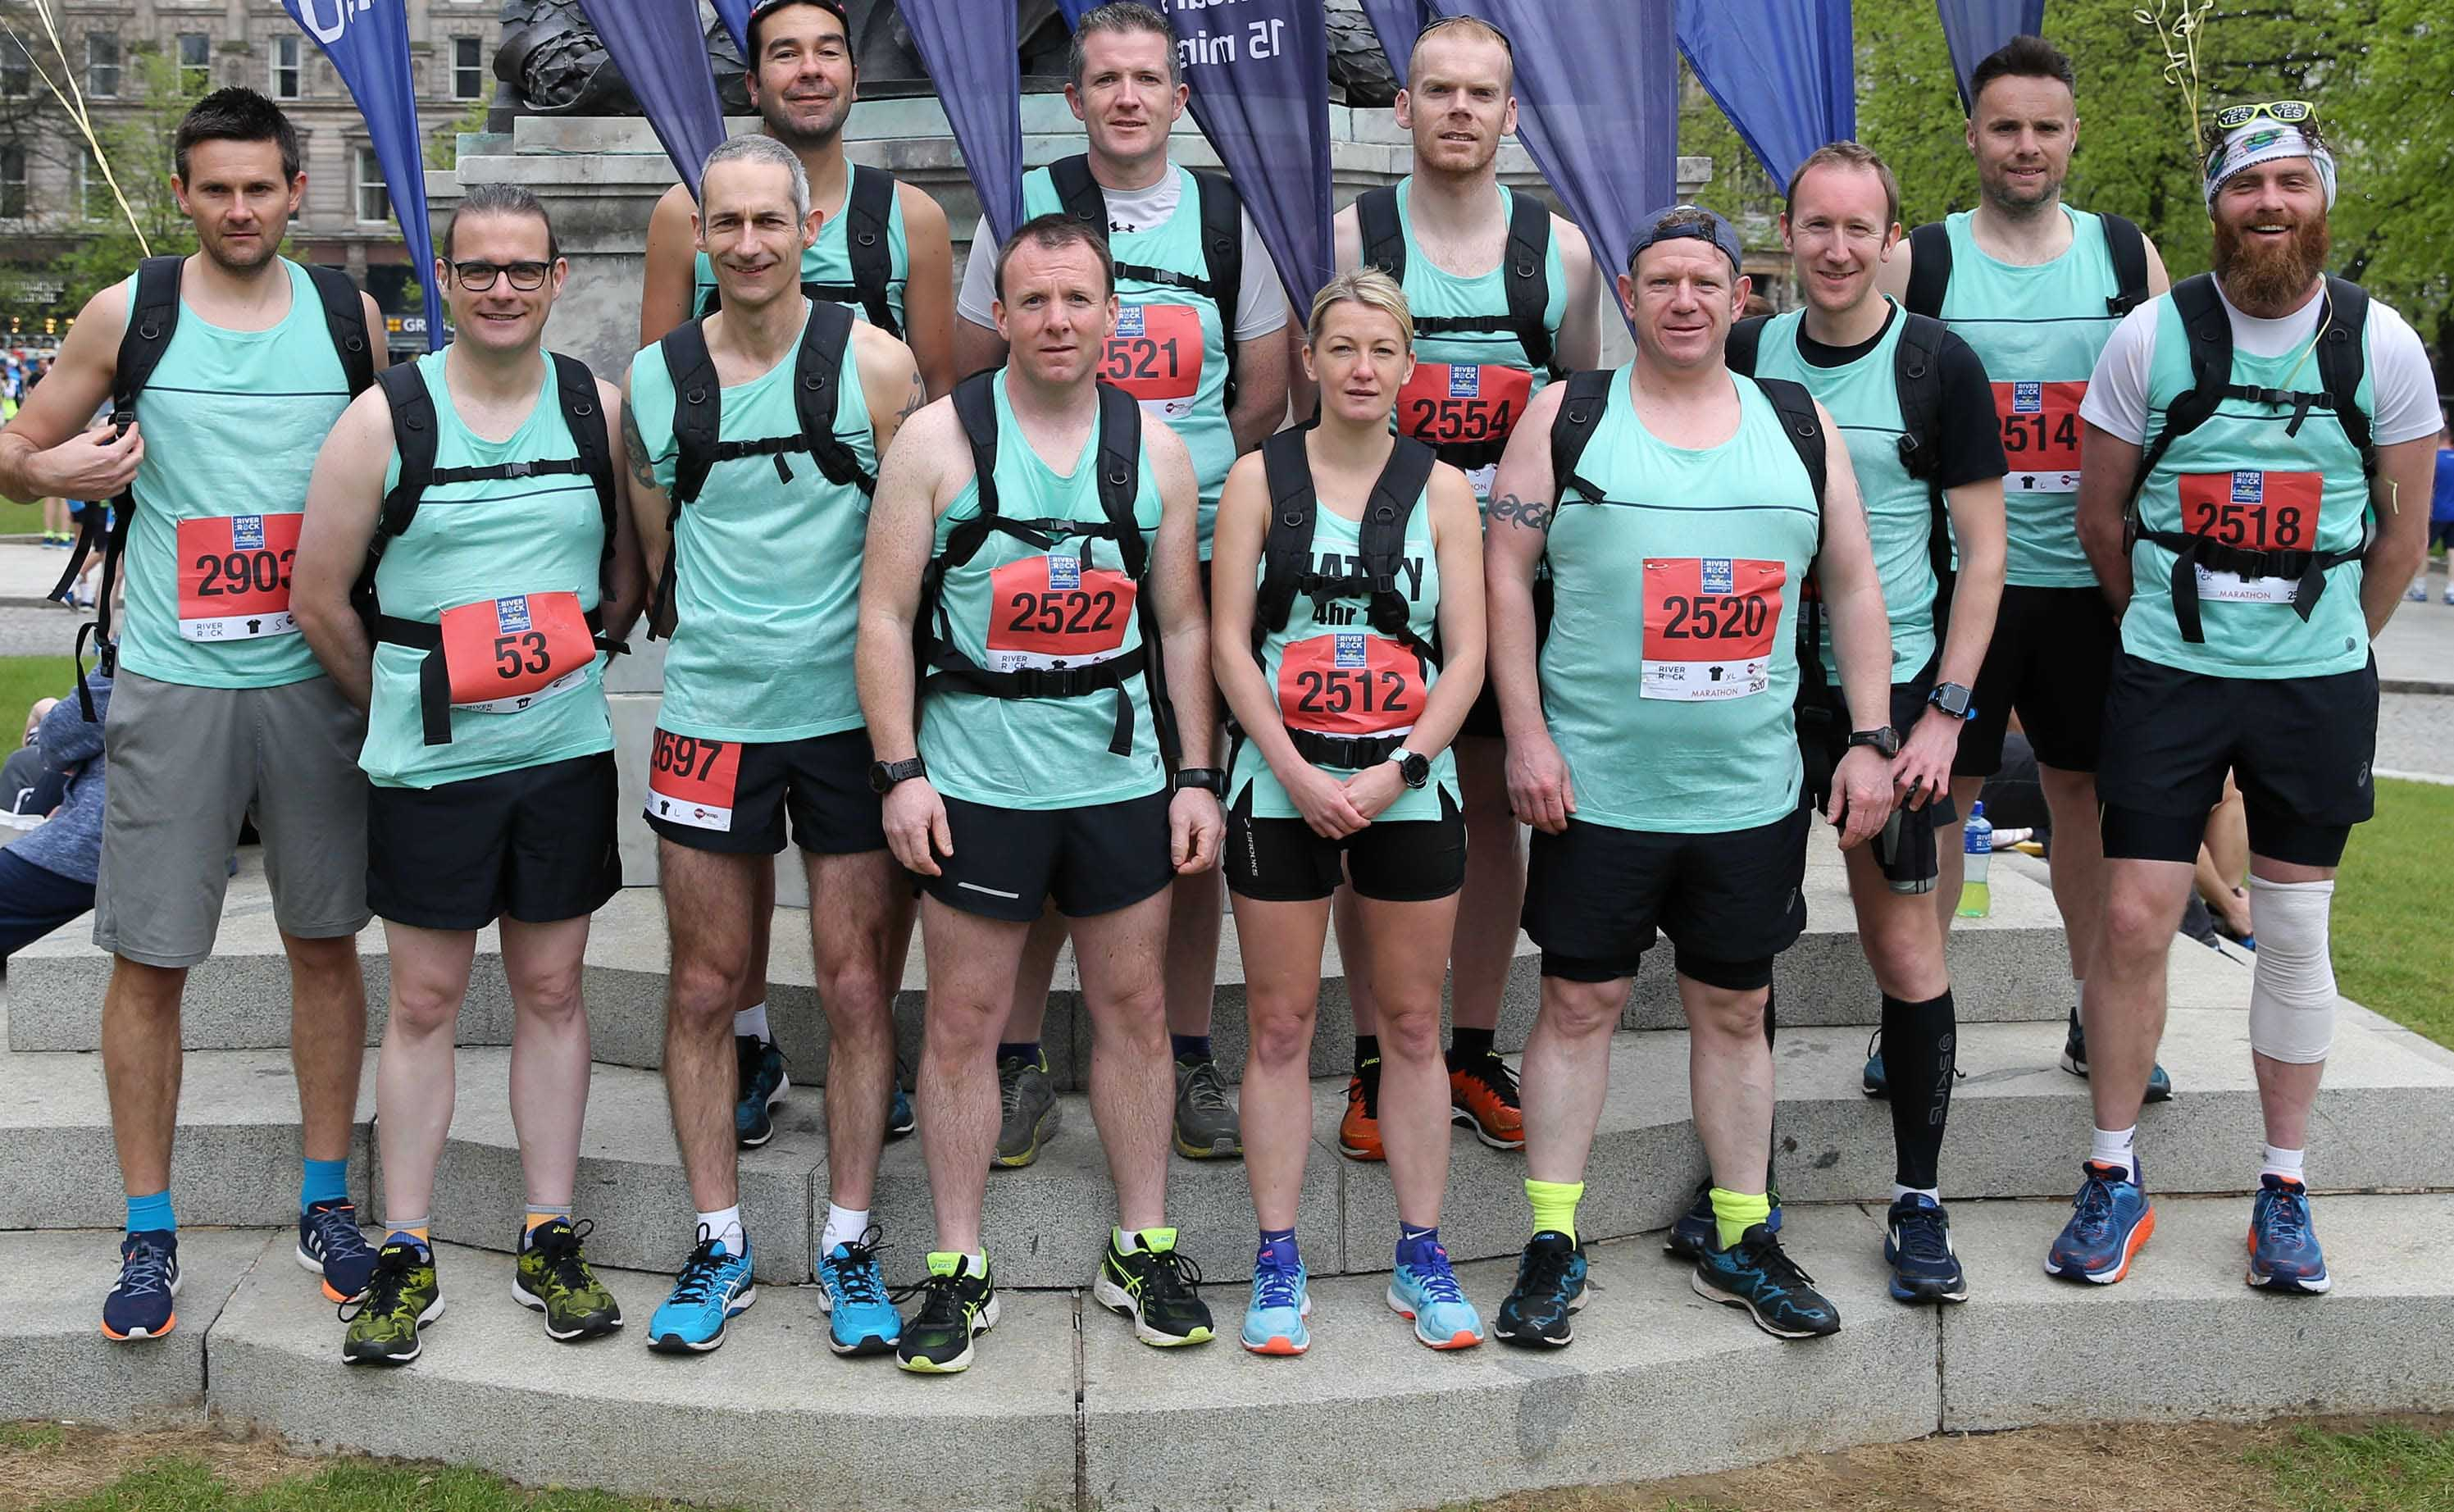 bd36ee70c26c0 Record breaking field of 4,000 set for Deep RiverRock Belfast City Half  Marathon 2018